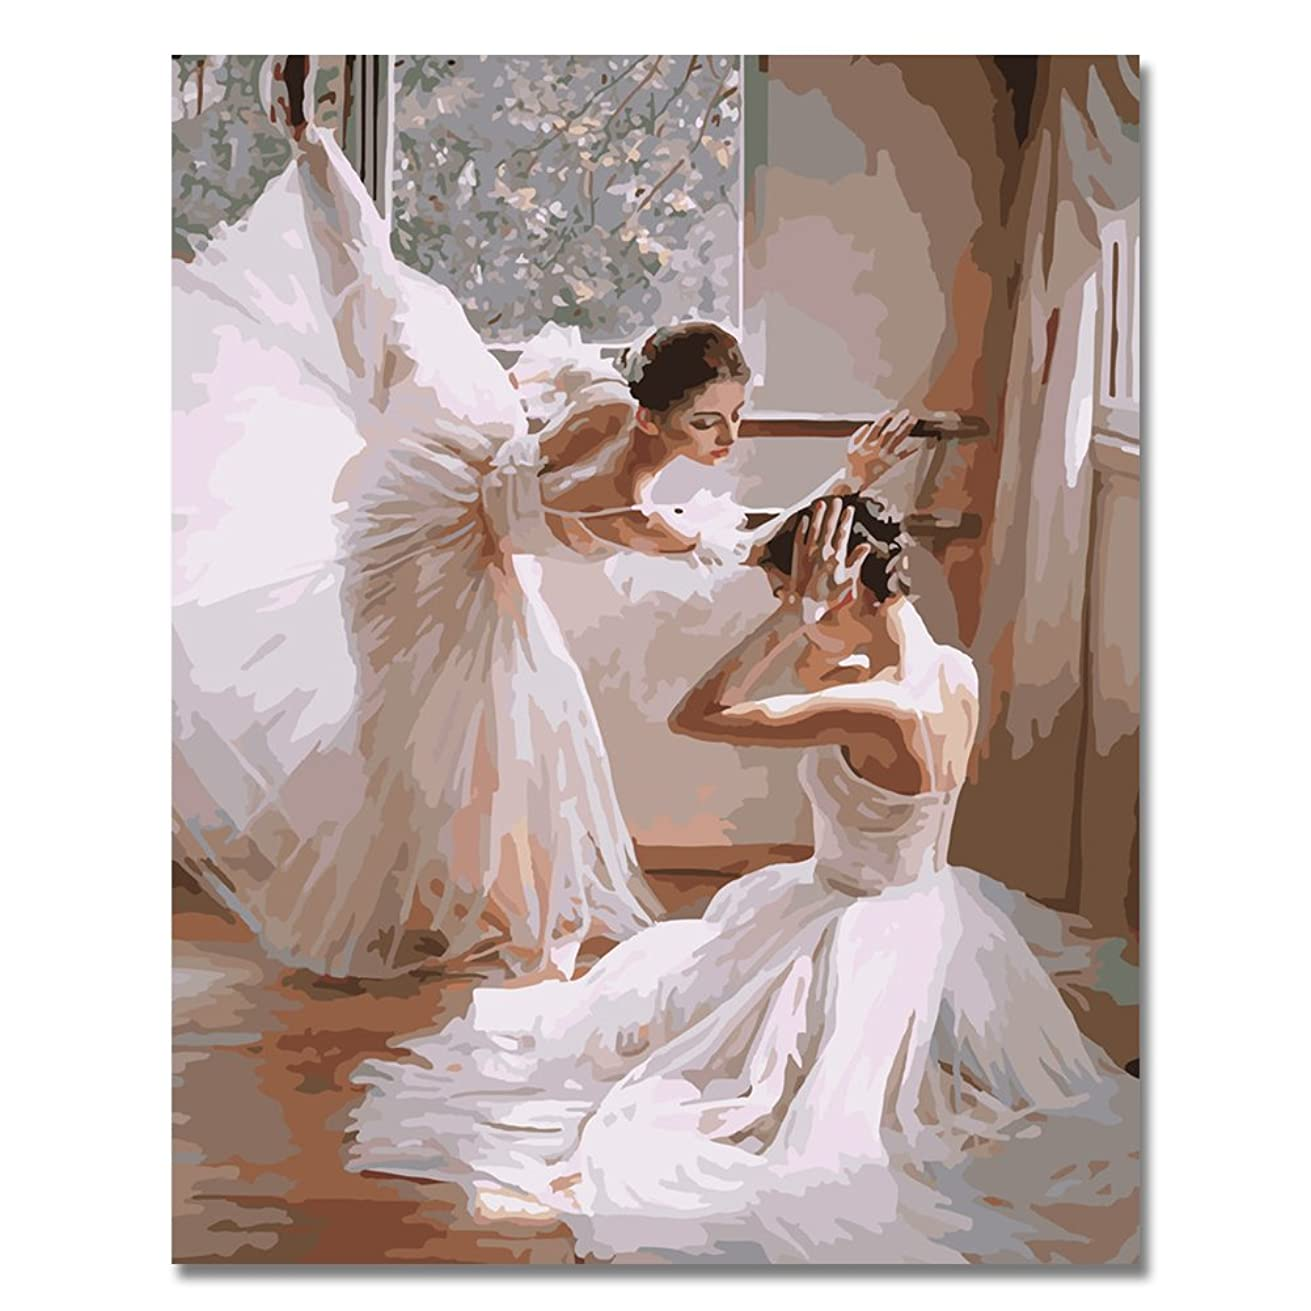 BOSHUN Paint by Numbers Kits with Brushes and Acrylic Pigment DIY Canvas Painting for Adults Beginner- Ballet Dancers 16 x 20 inch(Without Frame)